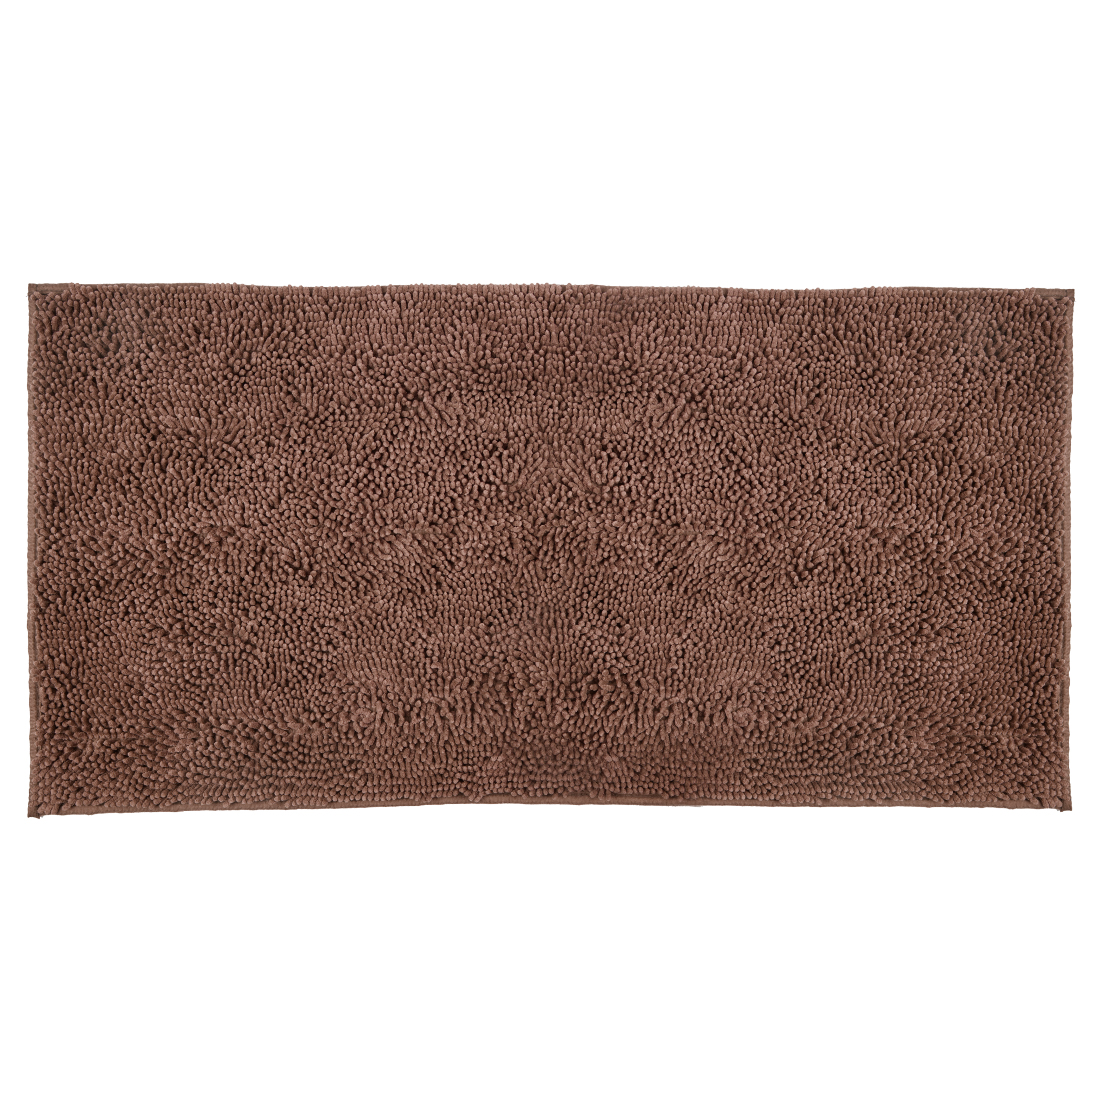 Bath Runner Nora Chenille Brown Chenille Bath Mats in Brown Colour by Living Essence